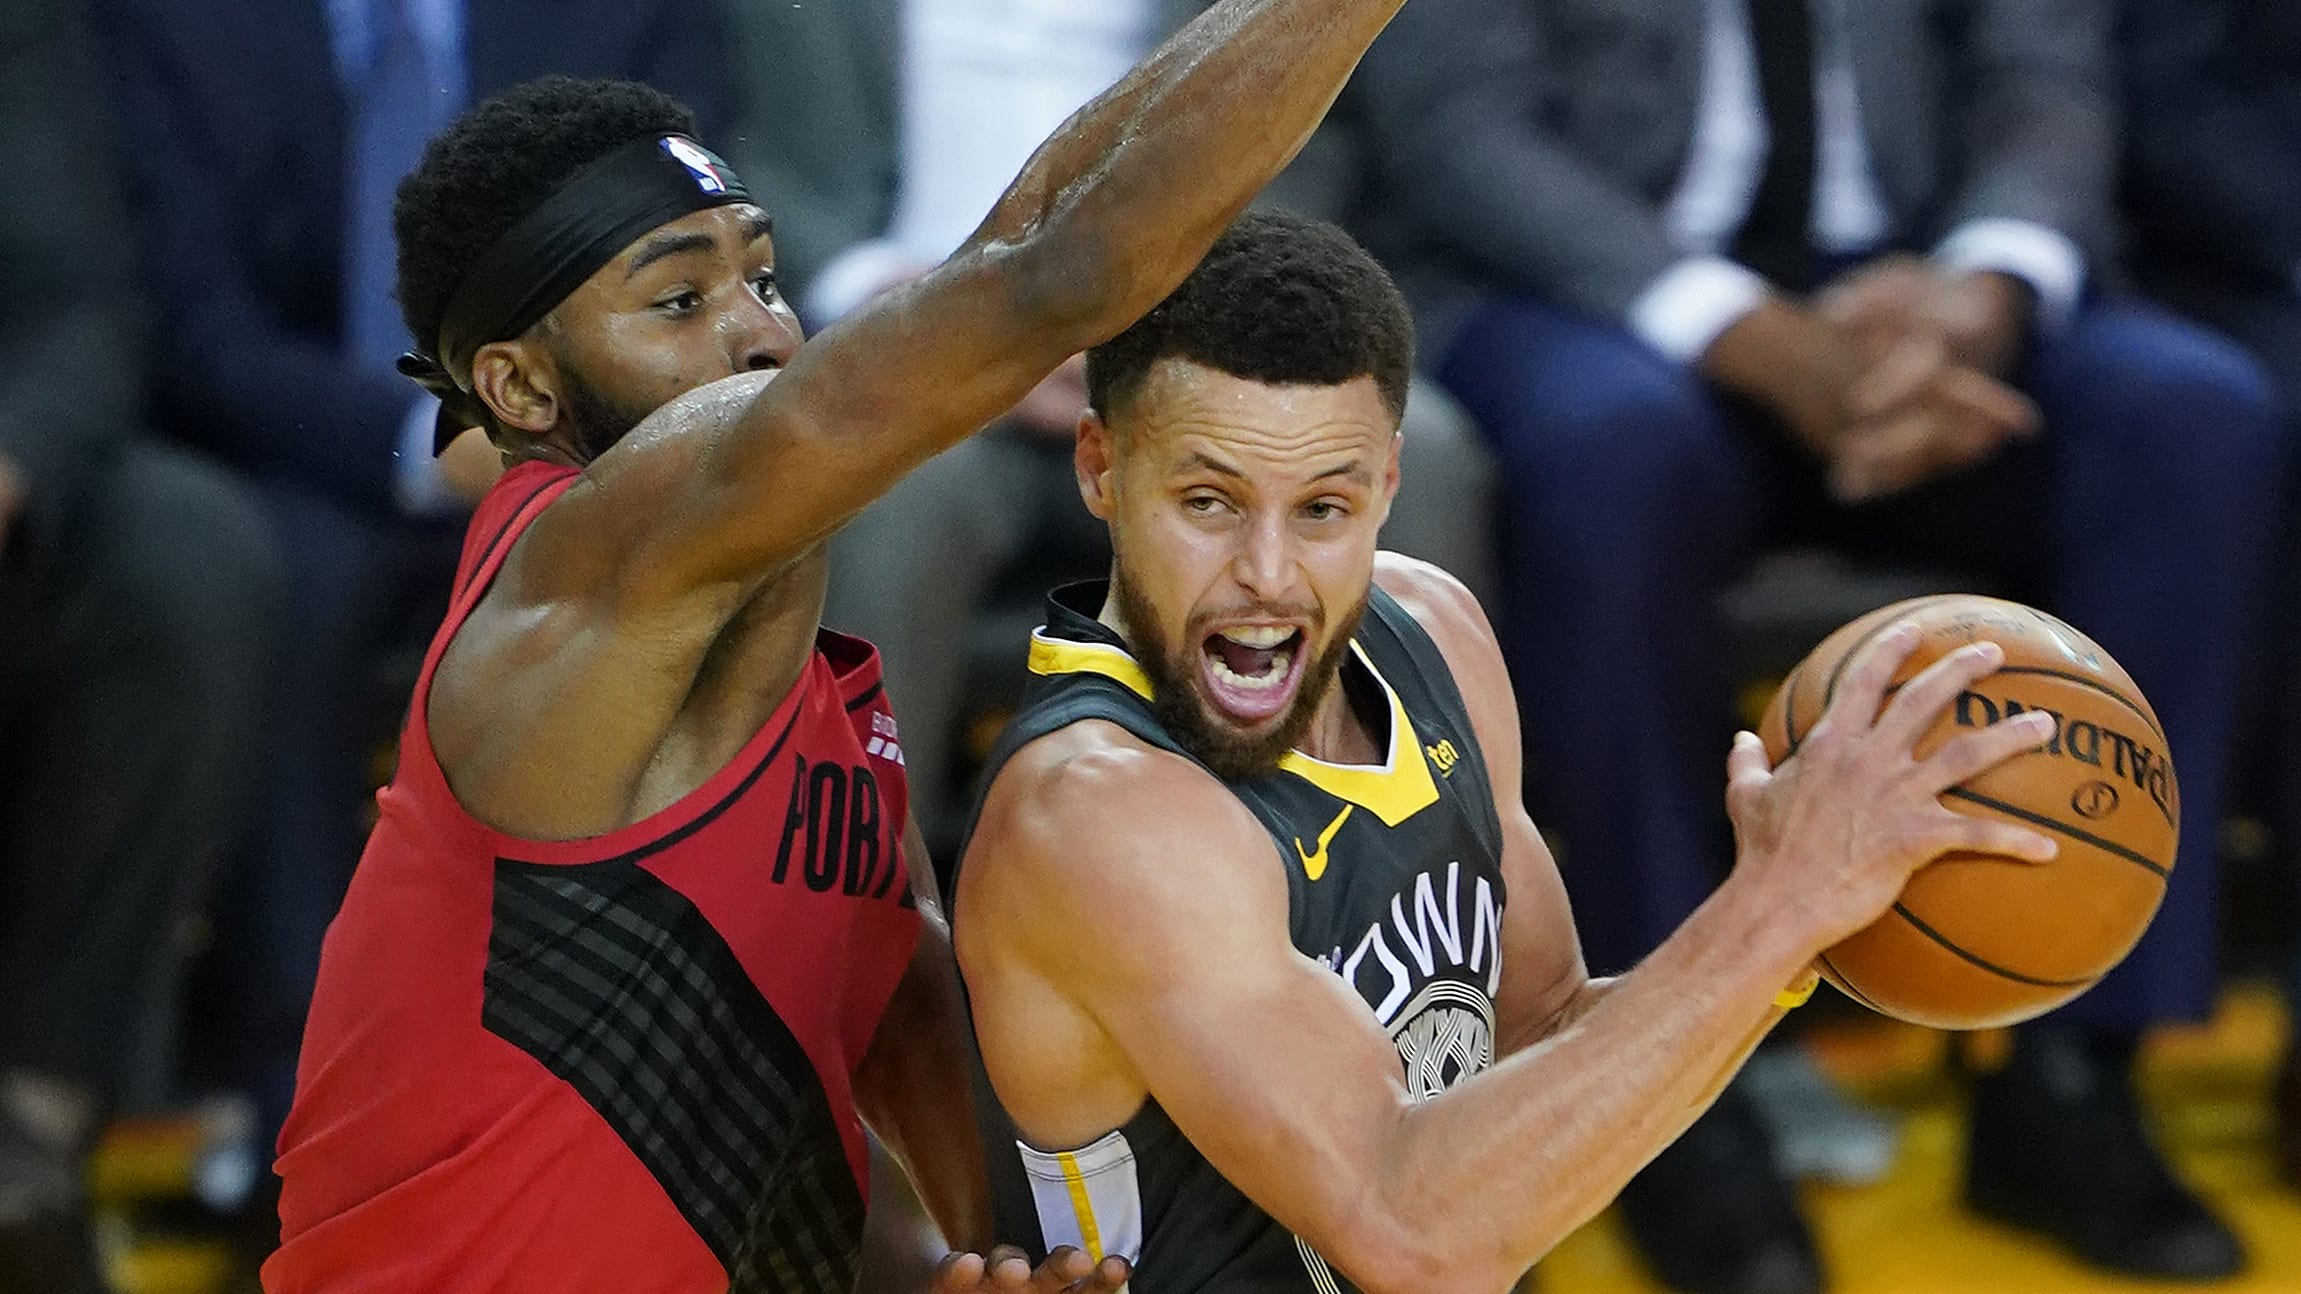 OAKLAND, CALIFORNIA - MAY 16: Stephen Curry #30 of the Golden State Warriors goes up for a shot against the Portland Trail Blazers in game two of the NBA Western Conference Finals at ORACLE Arena on May 16, 2019 in Oakland, California. NOTE TO USER: User expressly acknowledges and agrees that, by downloading and or using this photograph, User is consenting to the terms and conditions of the Getty Images License Agreement. (Photo by Thearon W. Henderson/Getty Images)